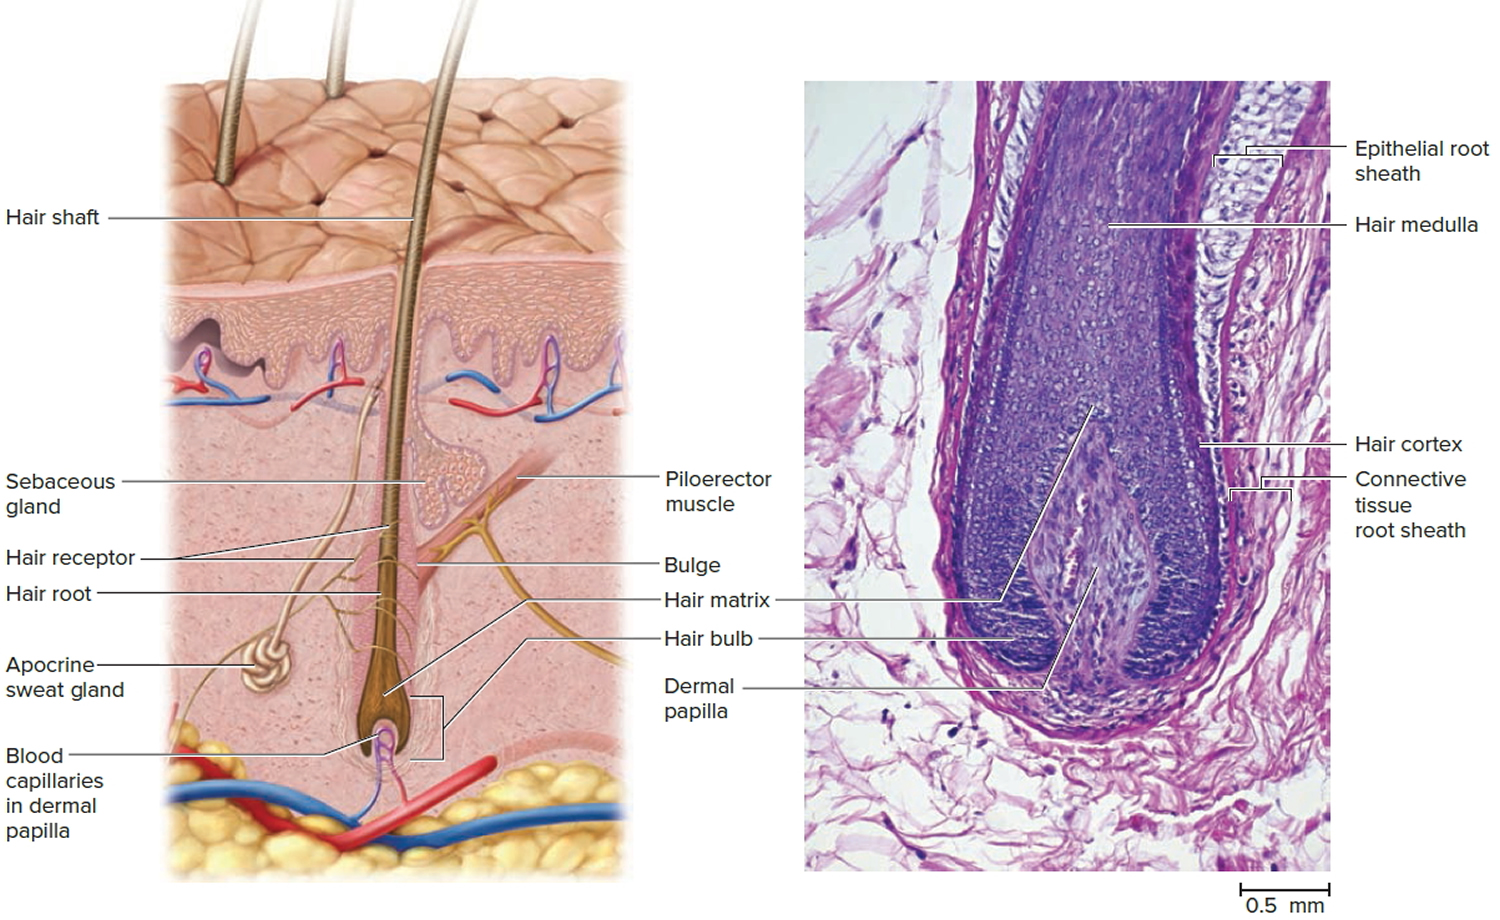 structure of hair and hair follicle